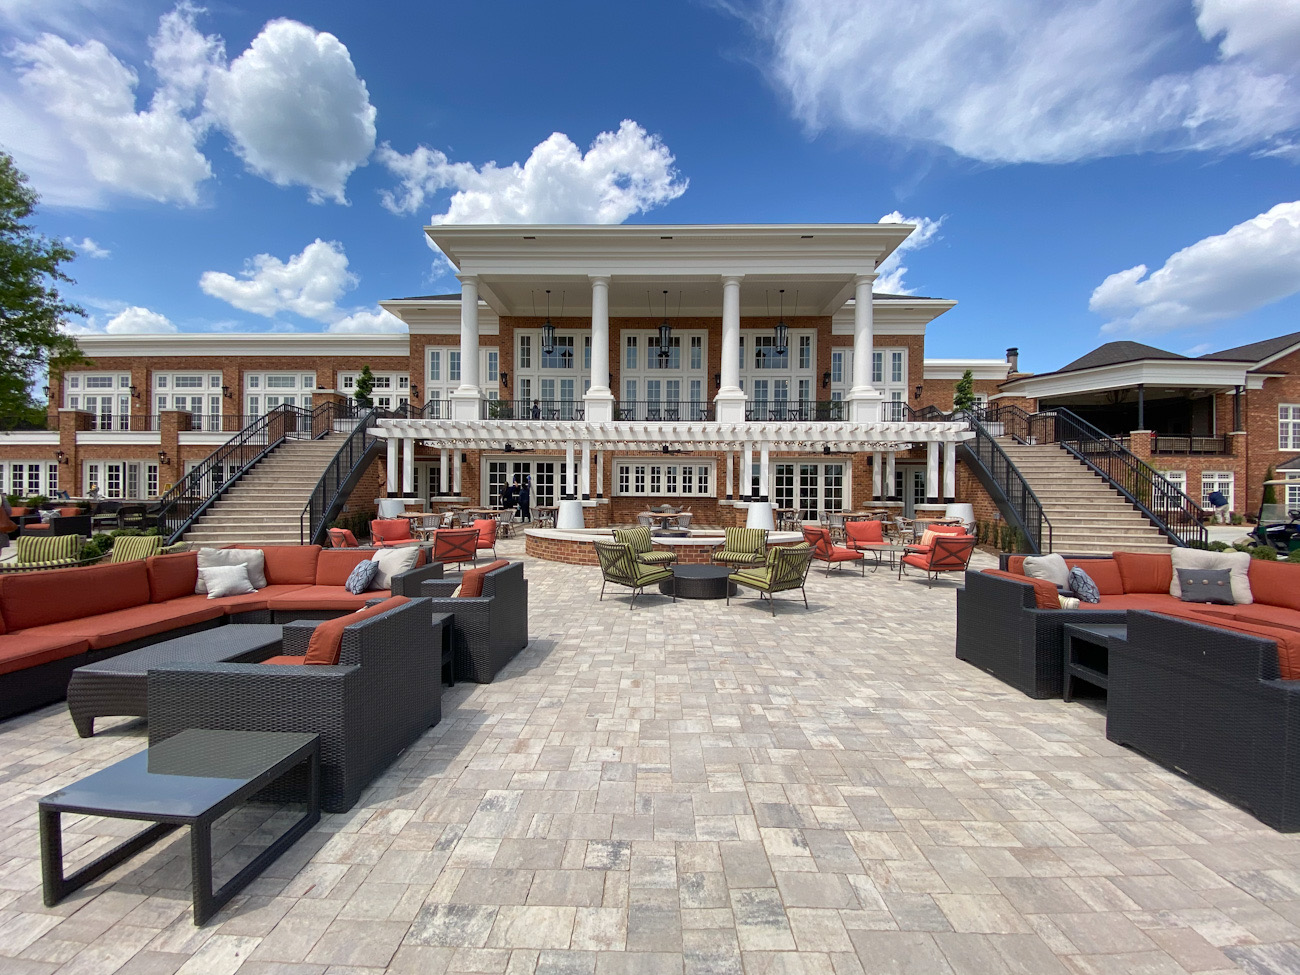 See inside: Carmel Country Club reopens after a year-long $21 million renovation